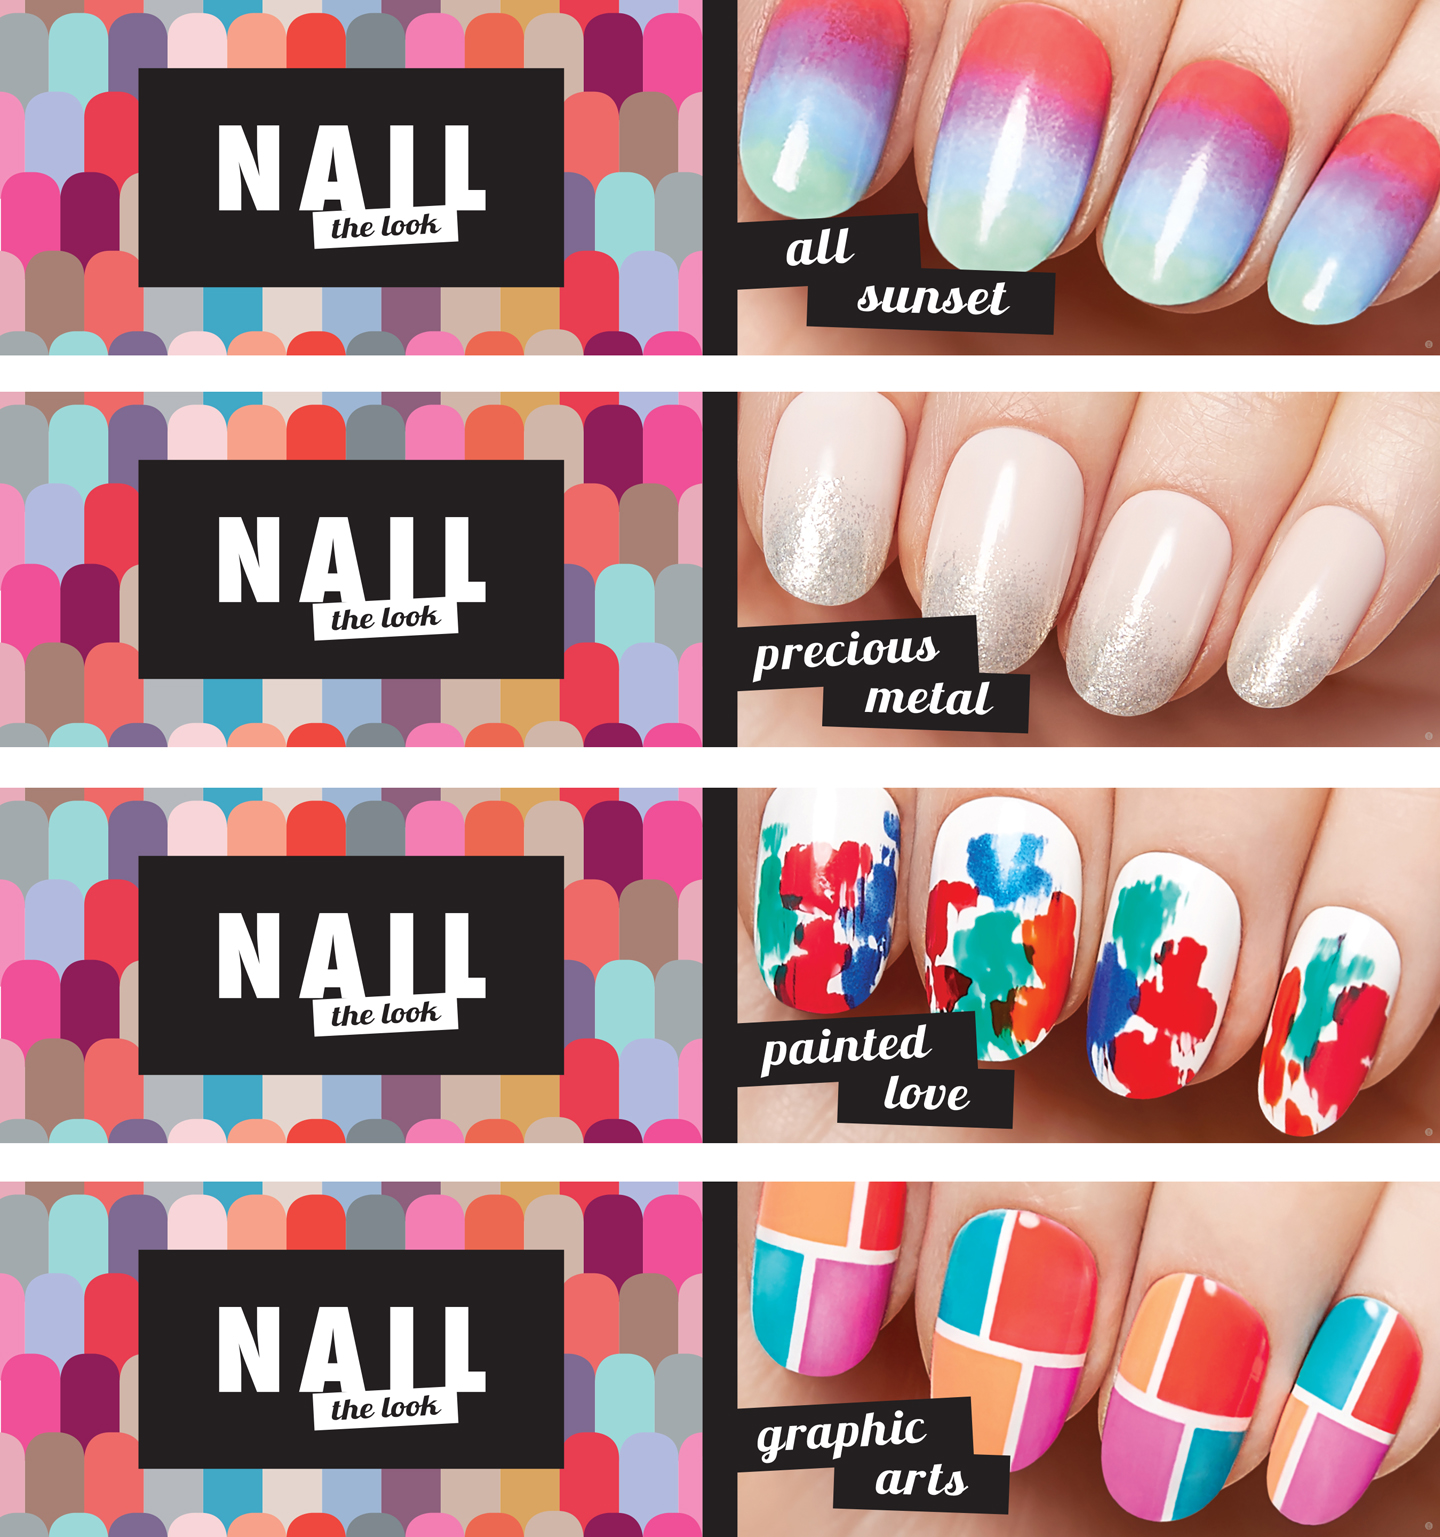 Shoppers Drug Mart Nail Campaign 2015 Quad Display Inserts- Four Sides. Product Displayed corresponded to the Four Nail Looks